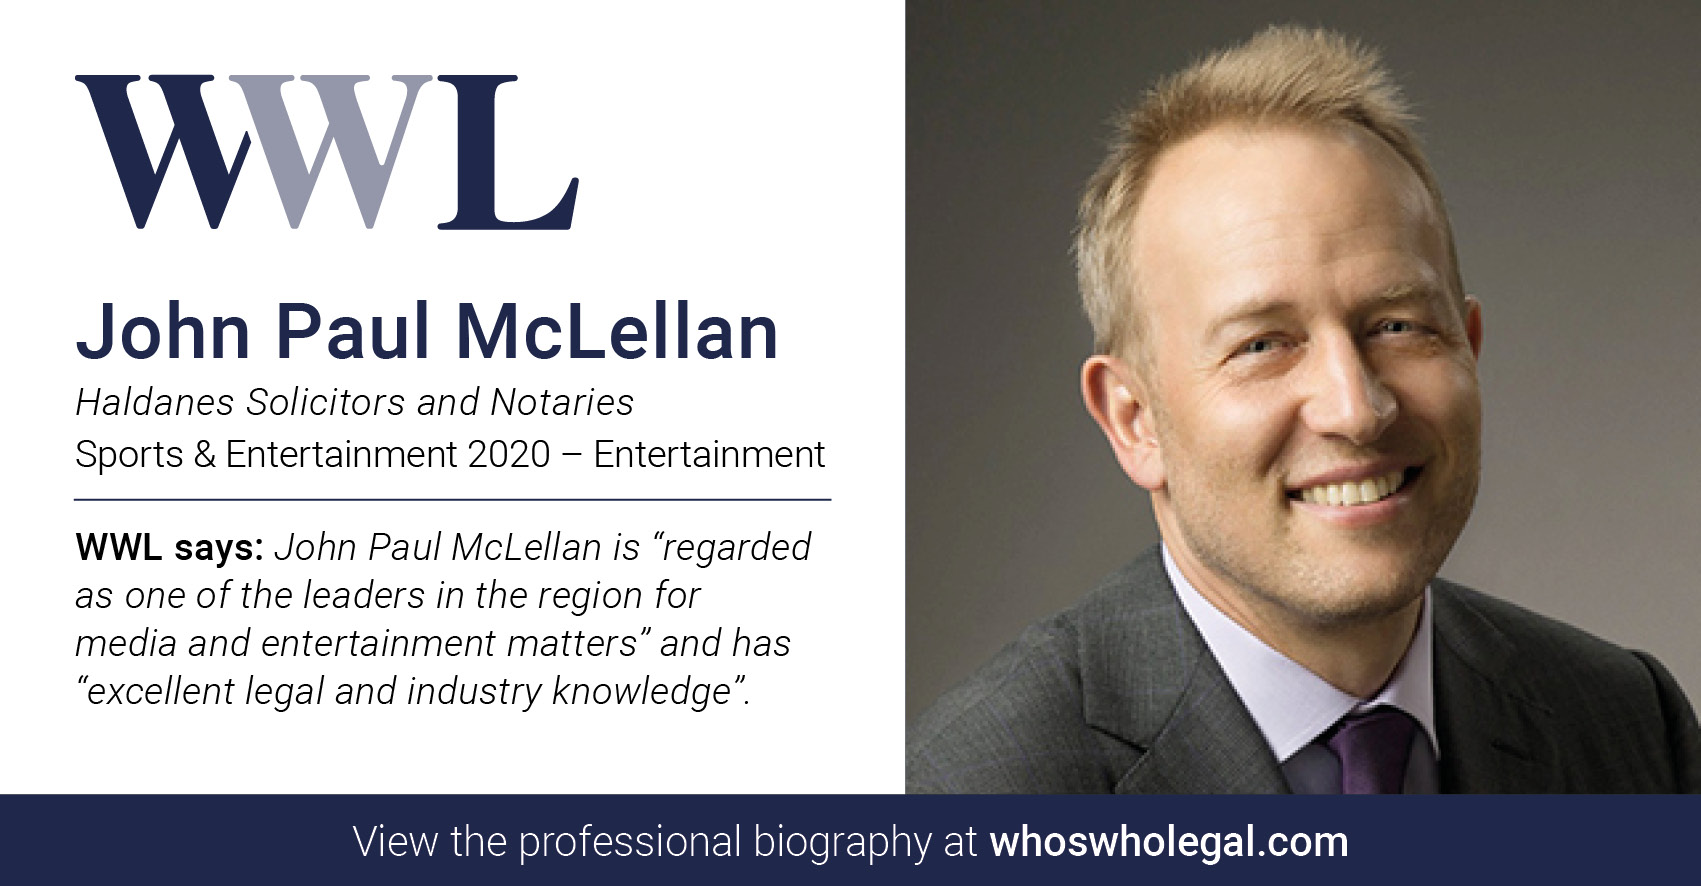 J McLellan WWL SpEnt Ent - John McLellan recognised in Who's Who Legal Sports & Entertainment 2020